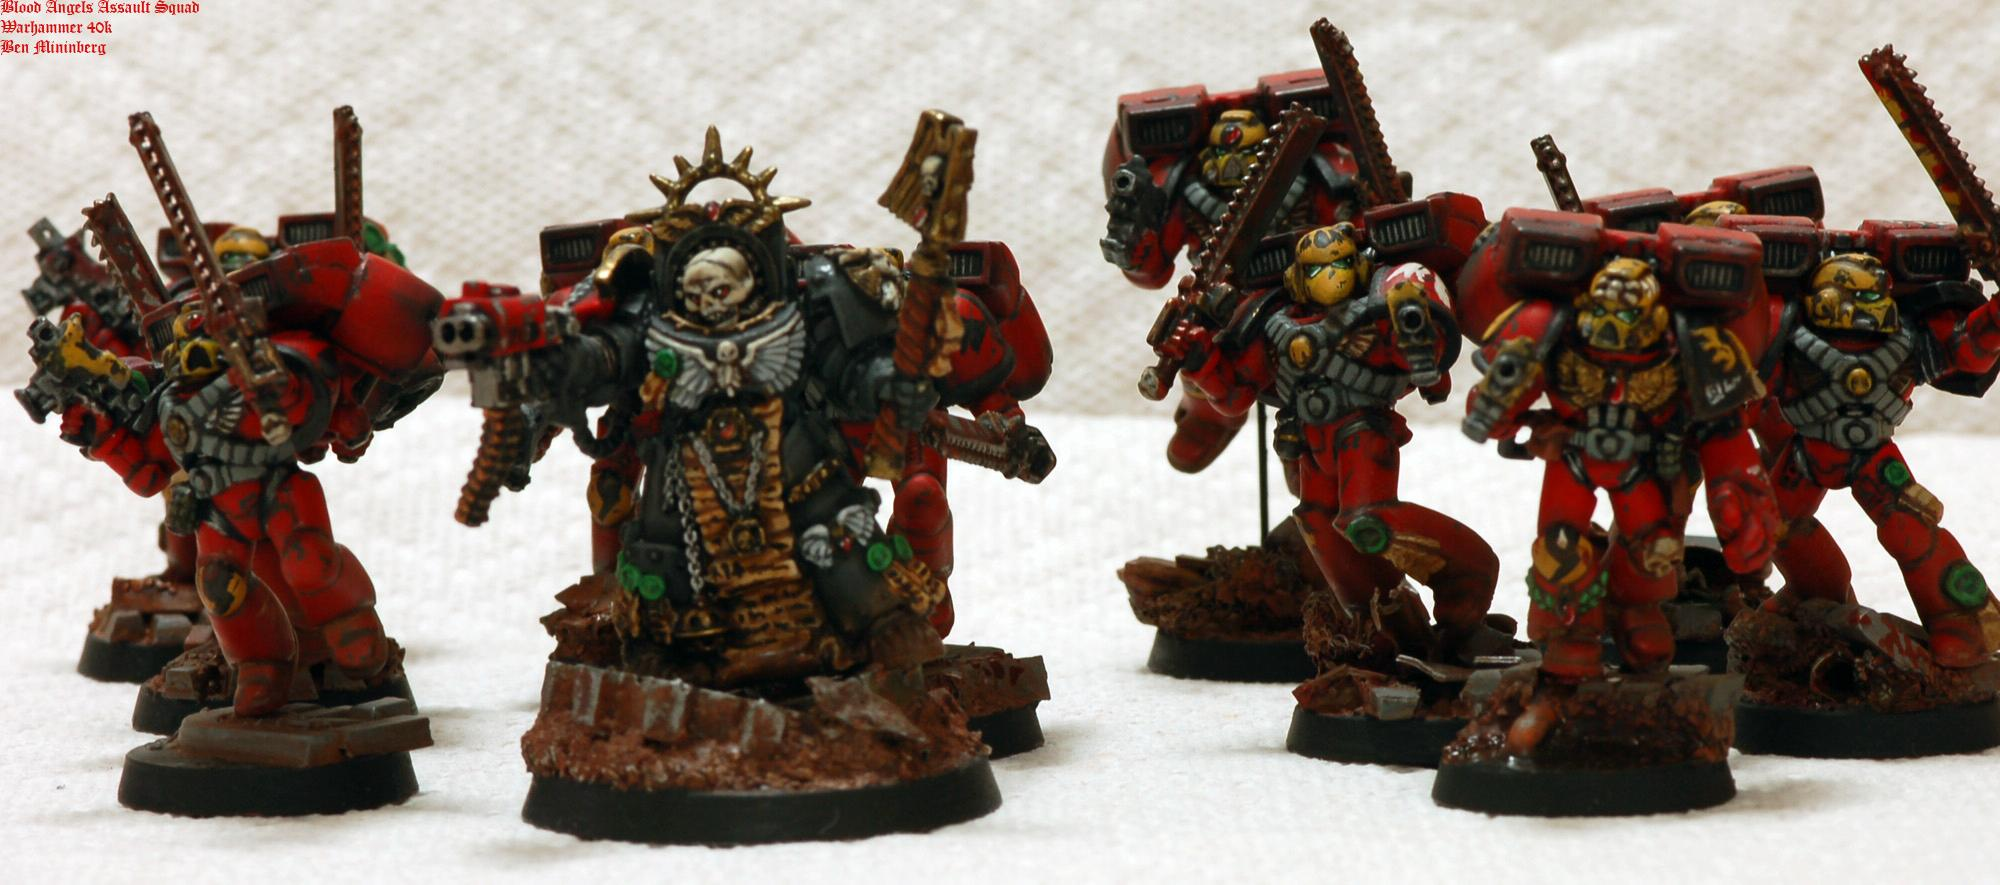 Angel, Assault, Base, Blood, Chainsword, Red, Scenic, Space Marines, Weathered